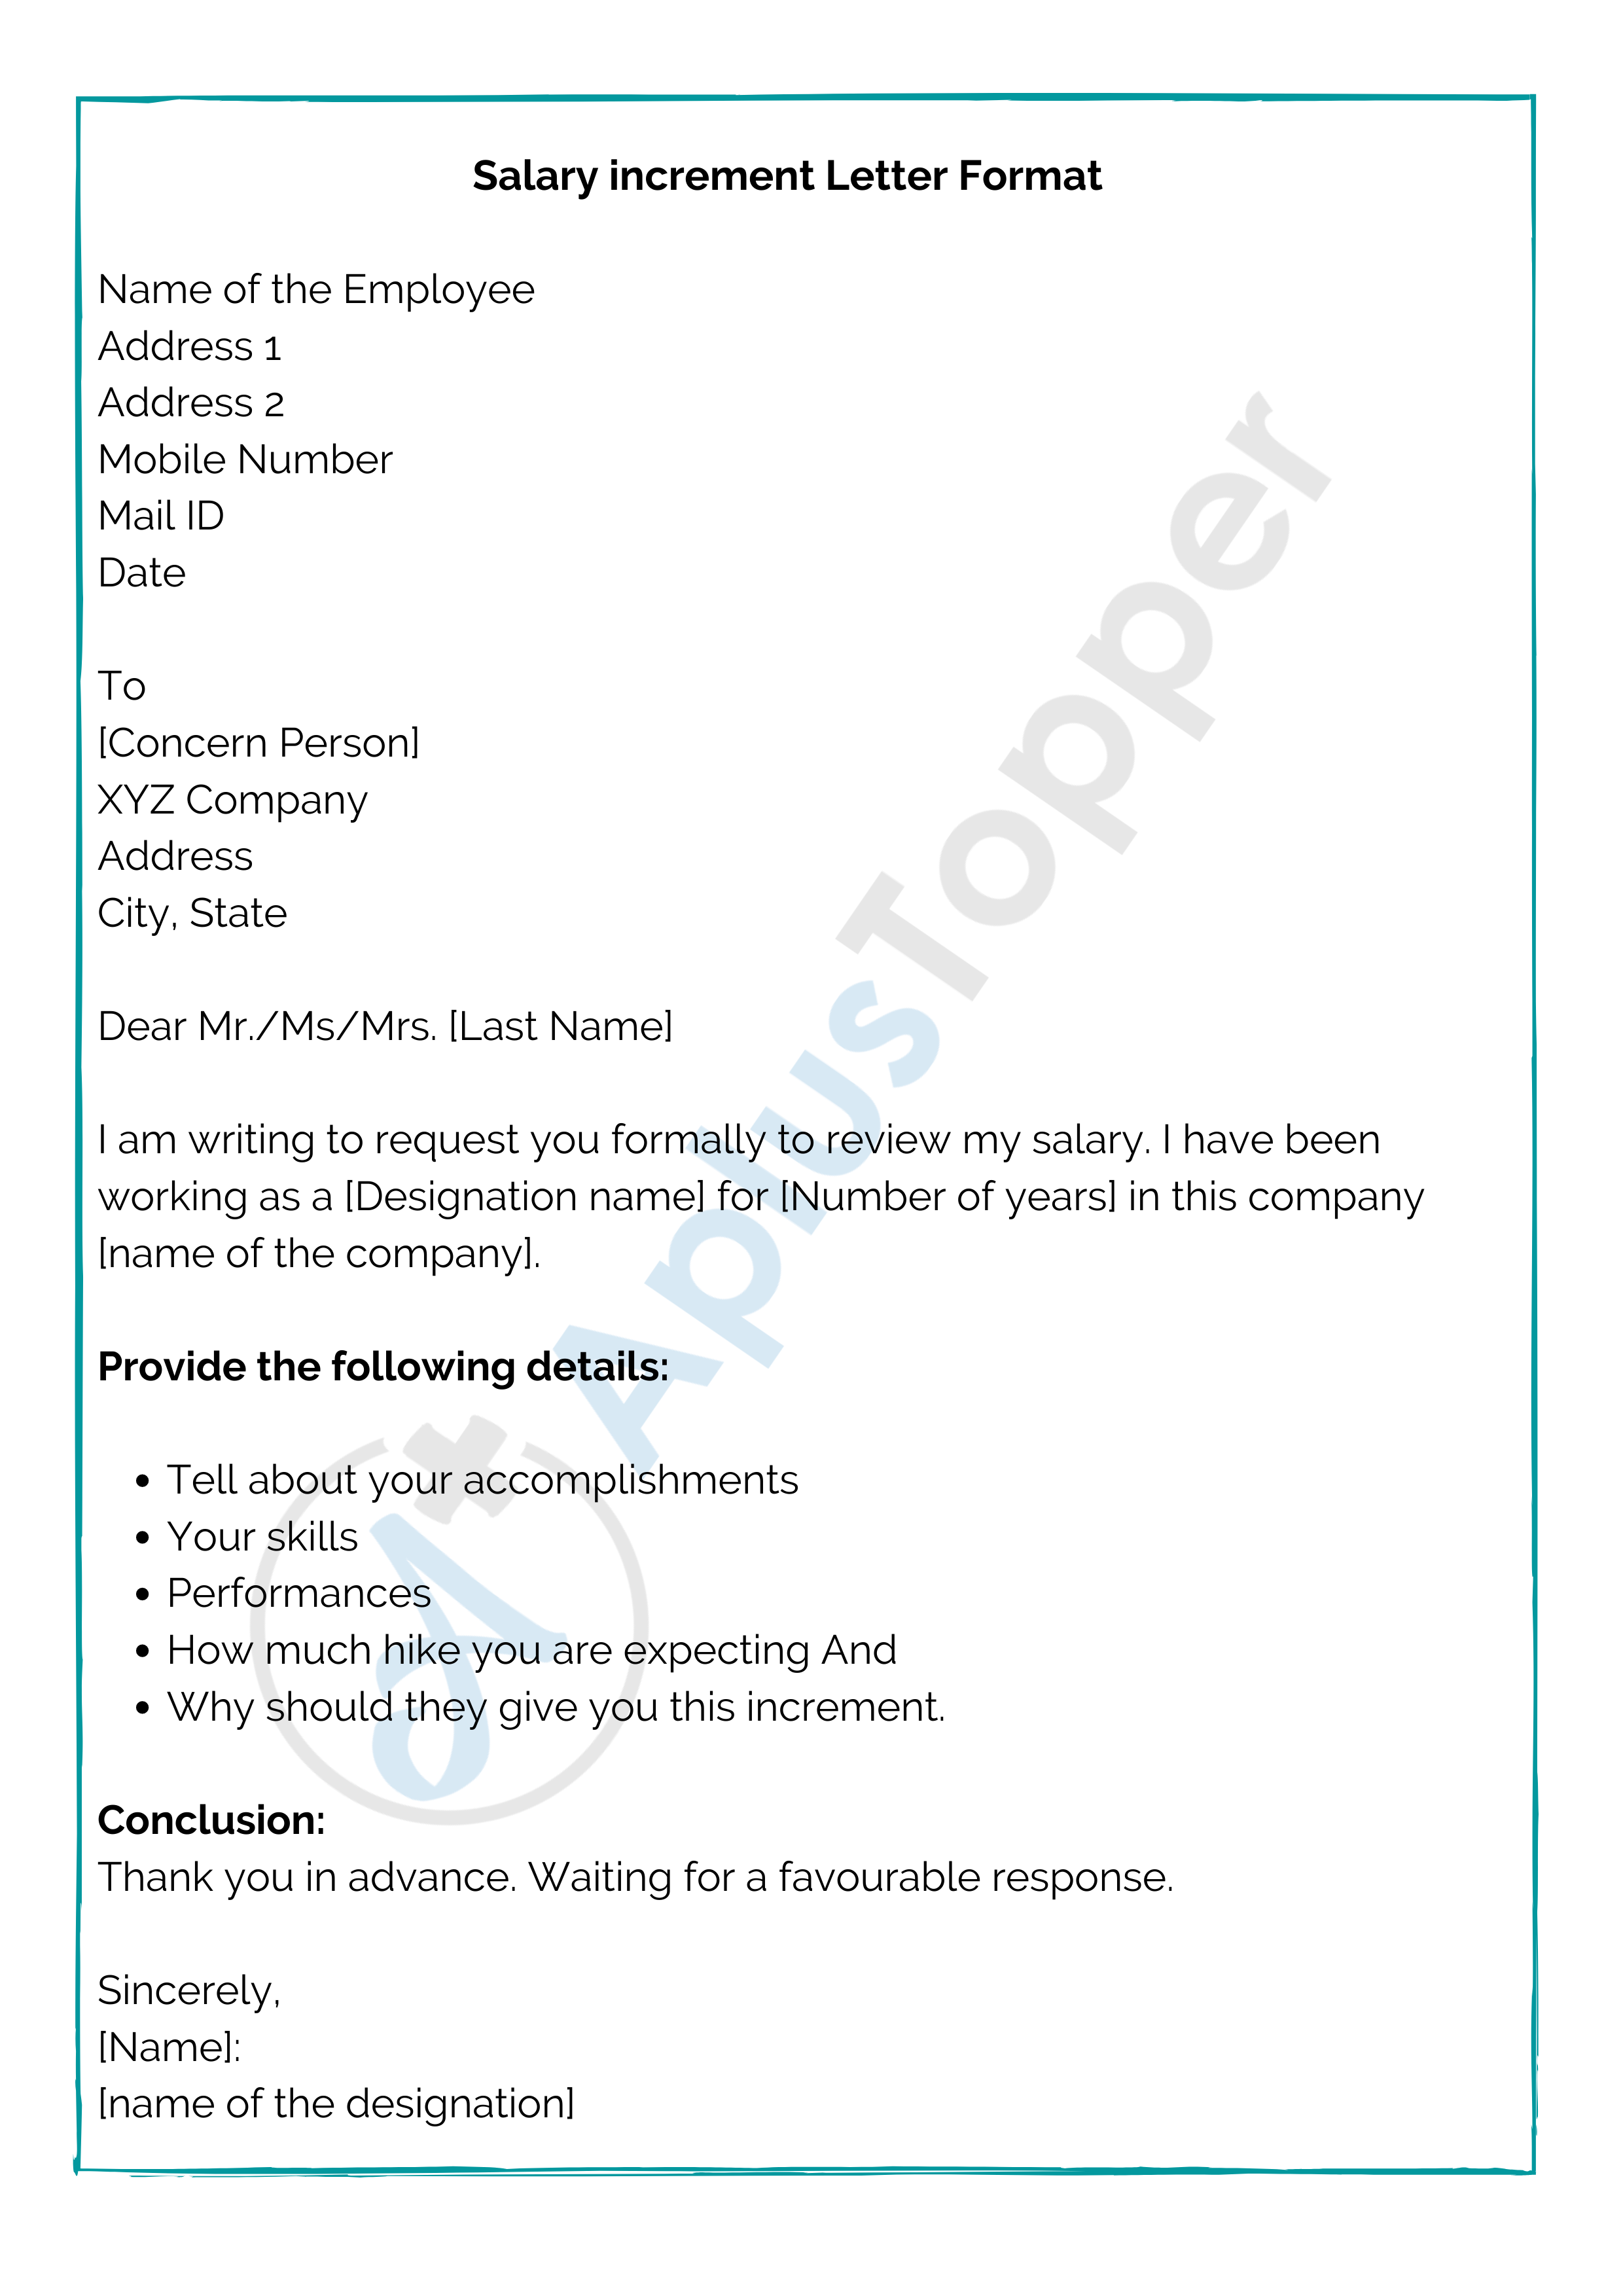 Salary Increment Letter Format